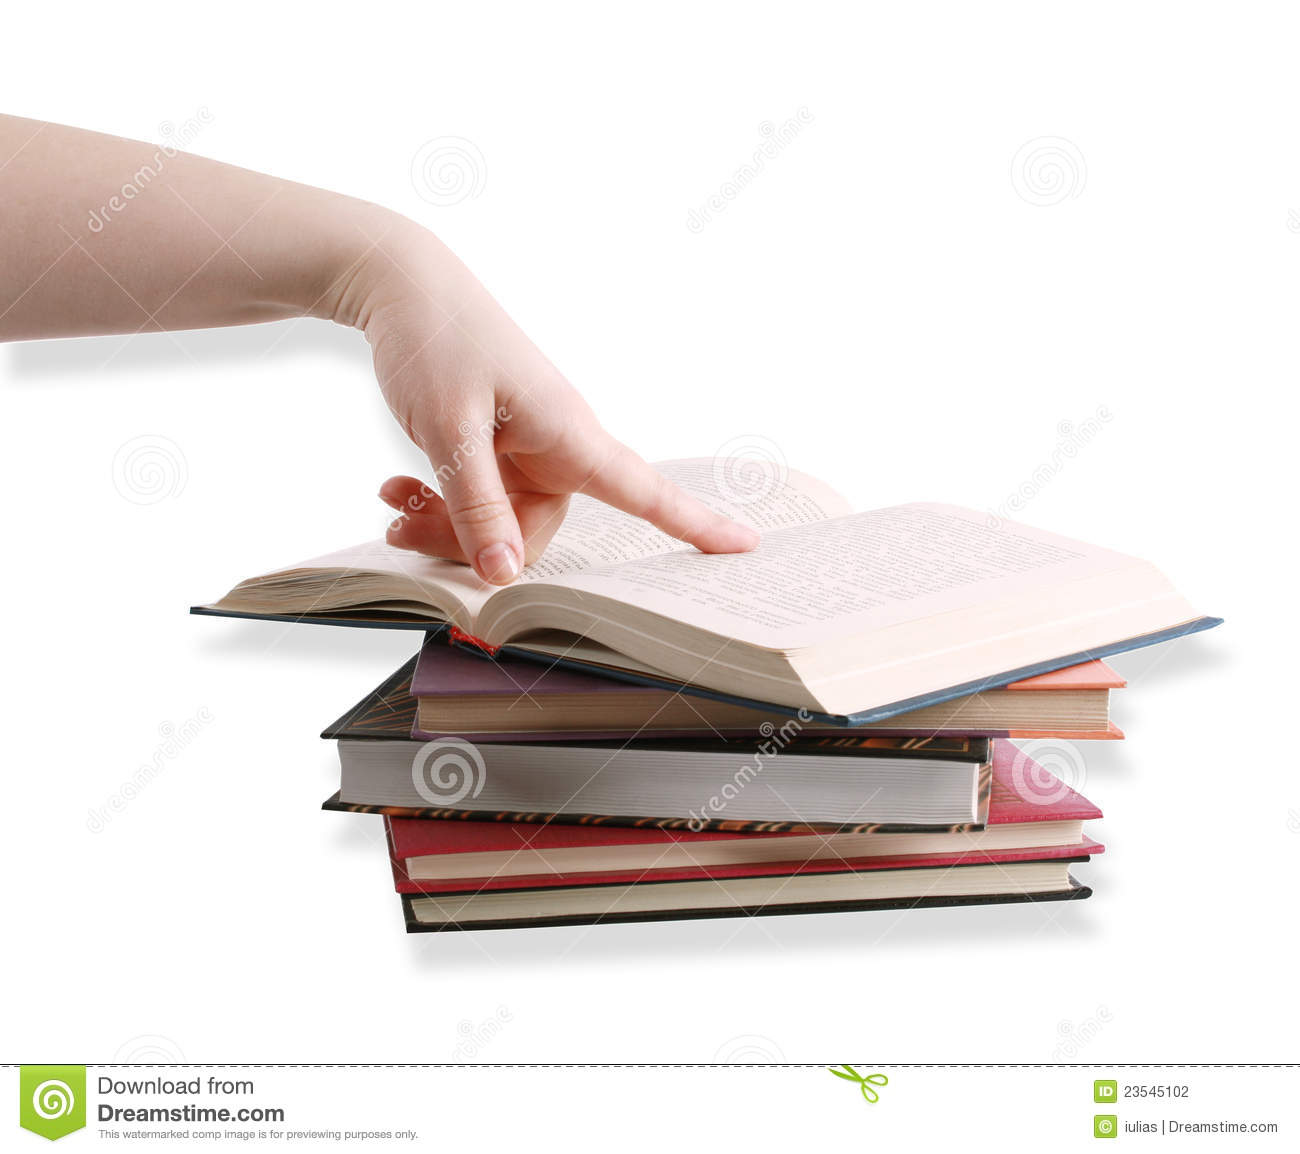 Finger Pointing On A Book Stock Photography - Image: 23545102